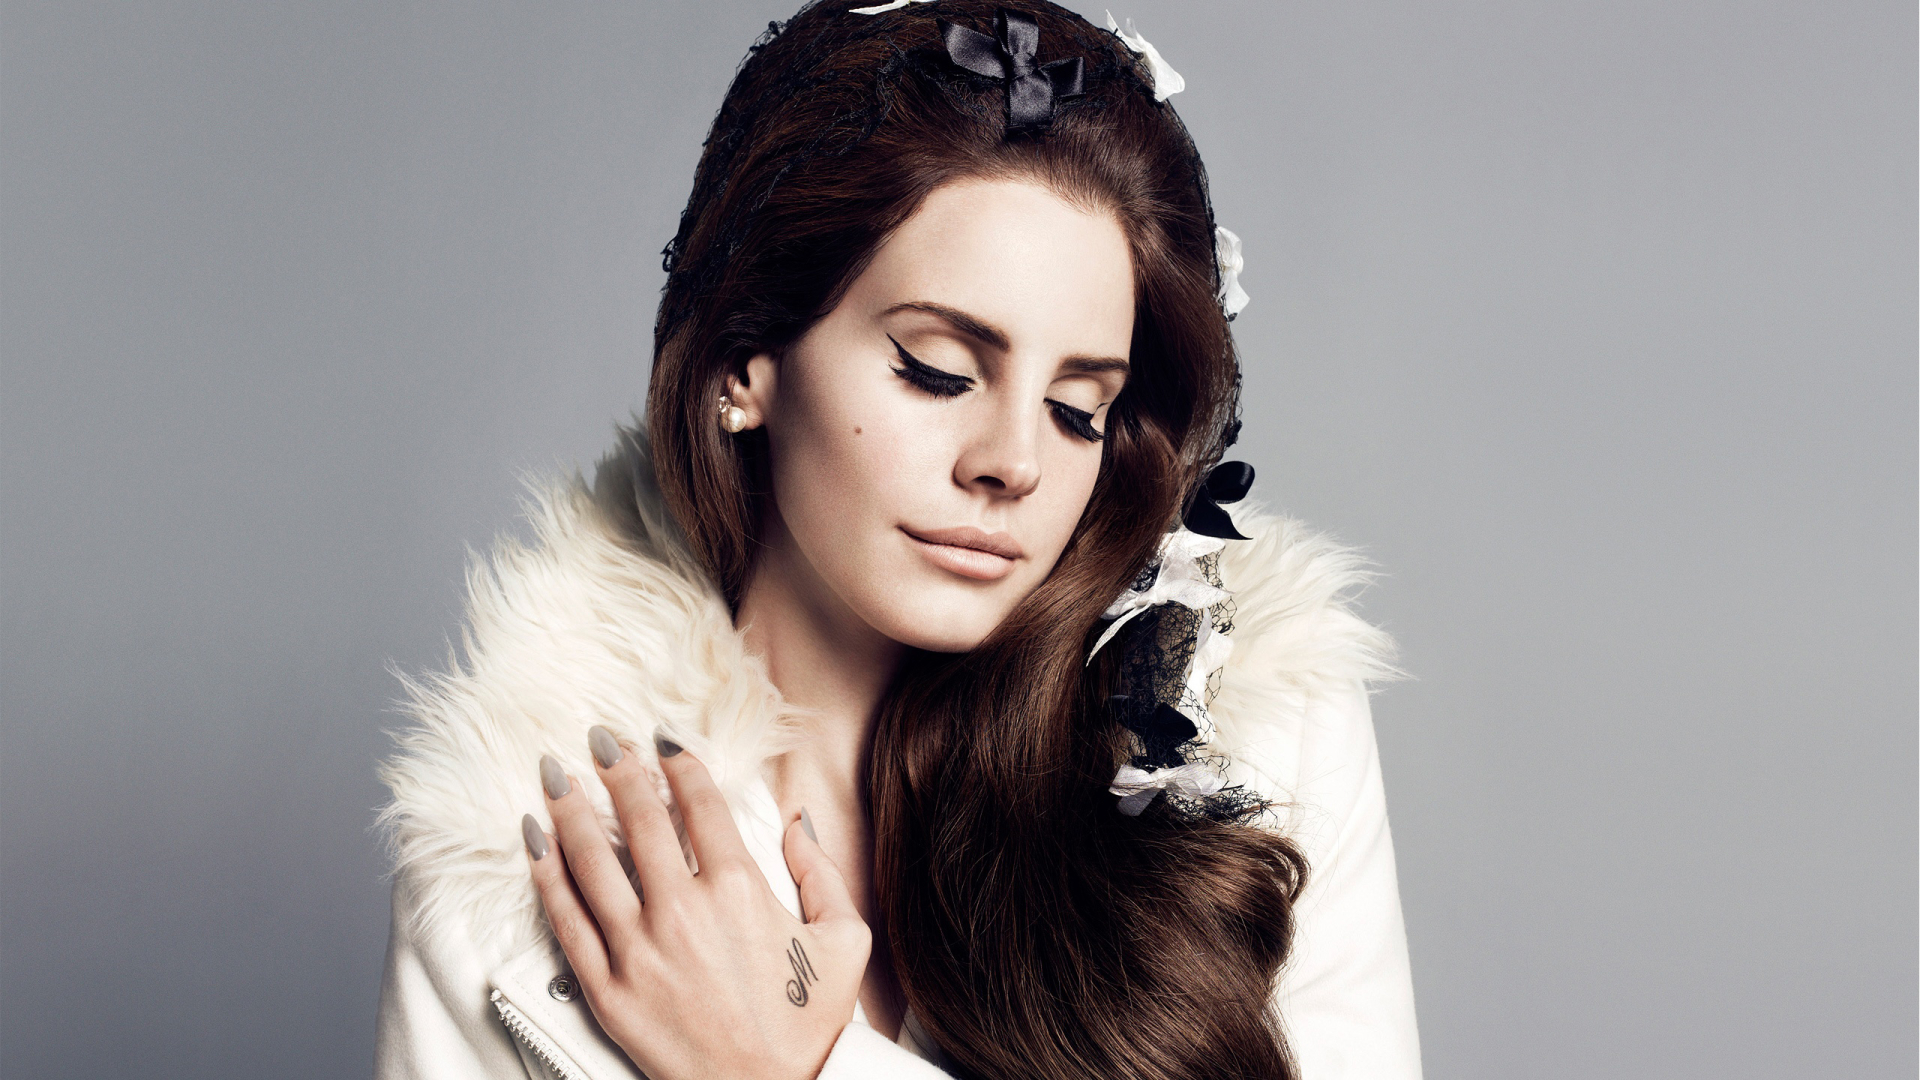 1920x1080 Lana Del Rey Portrait Wallpapers 1080p Laptop Full Hd